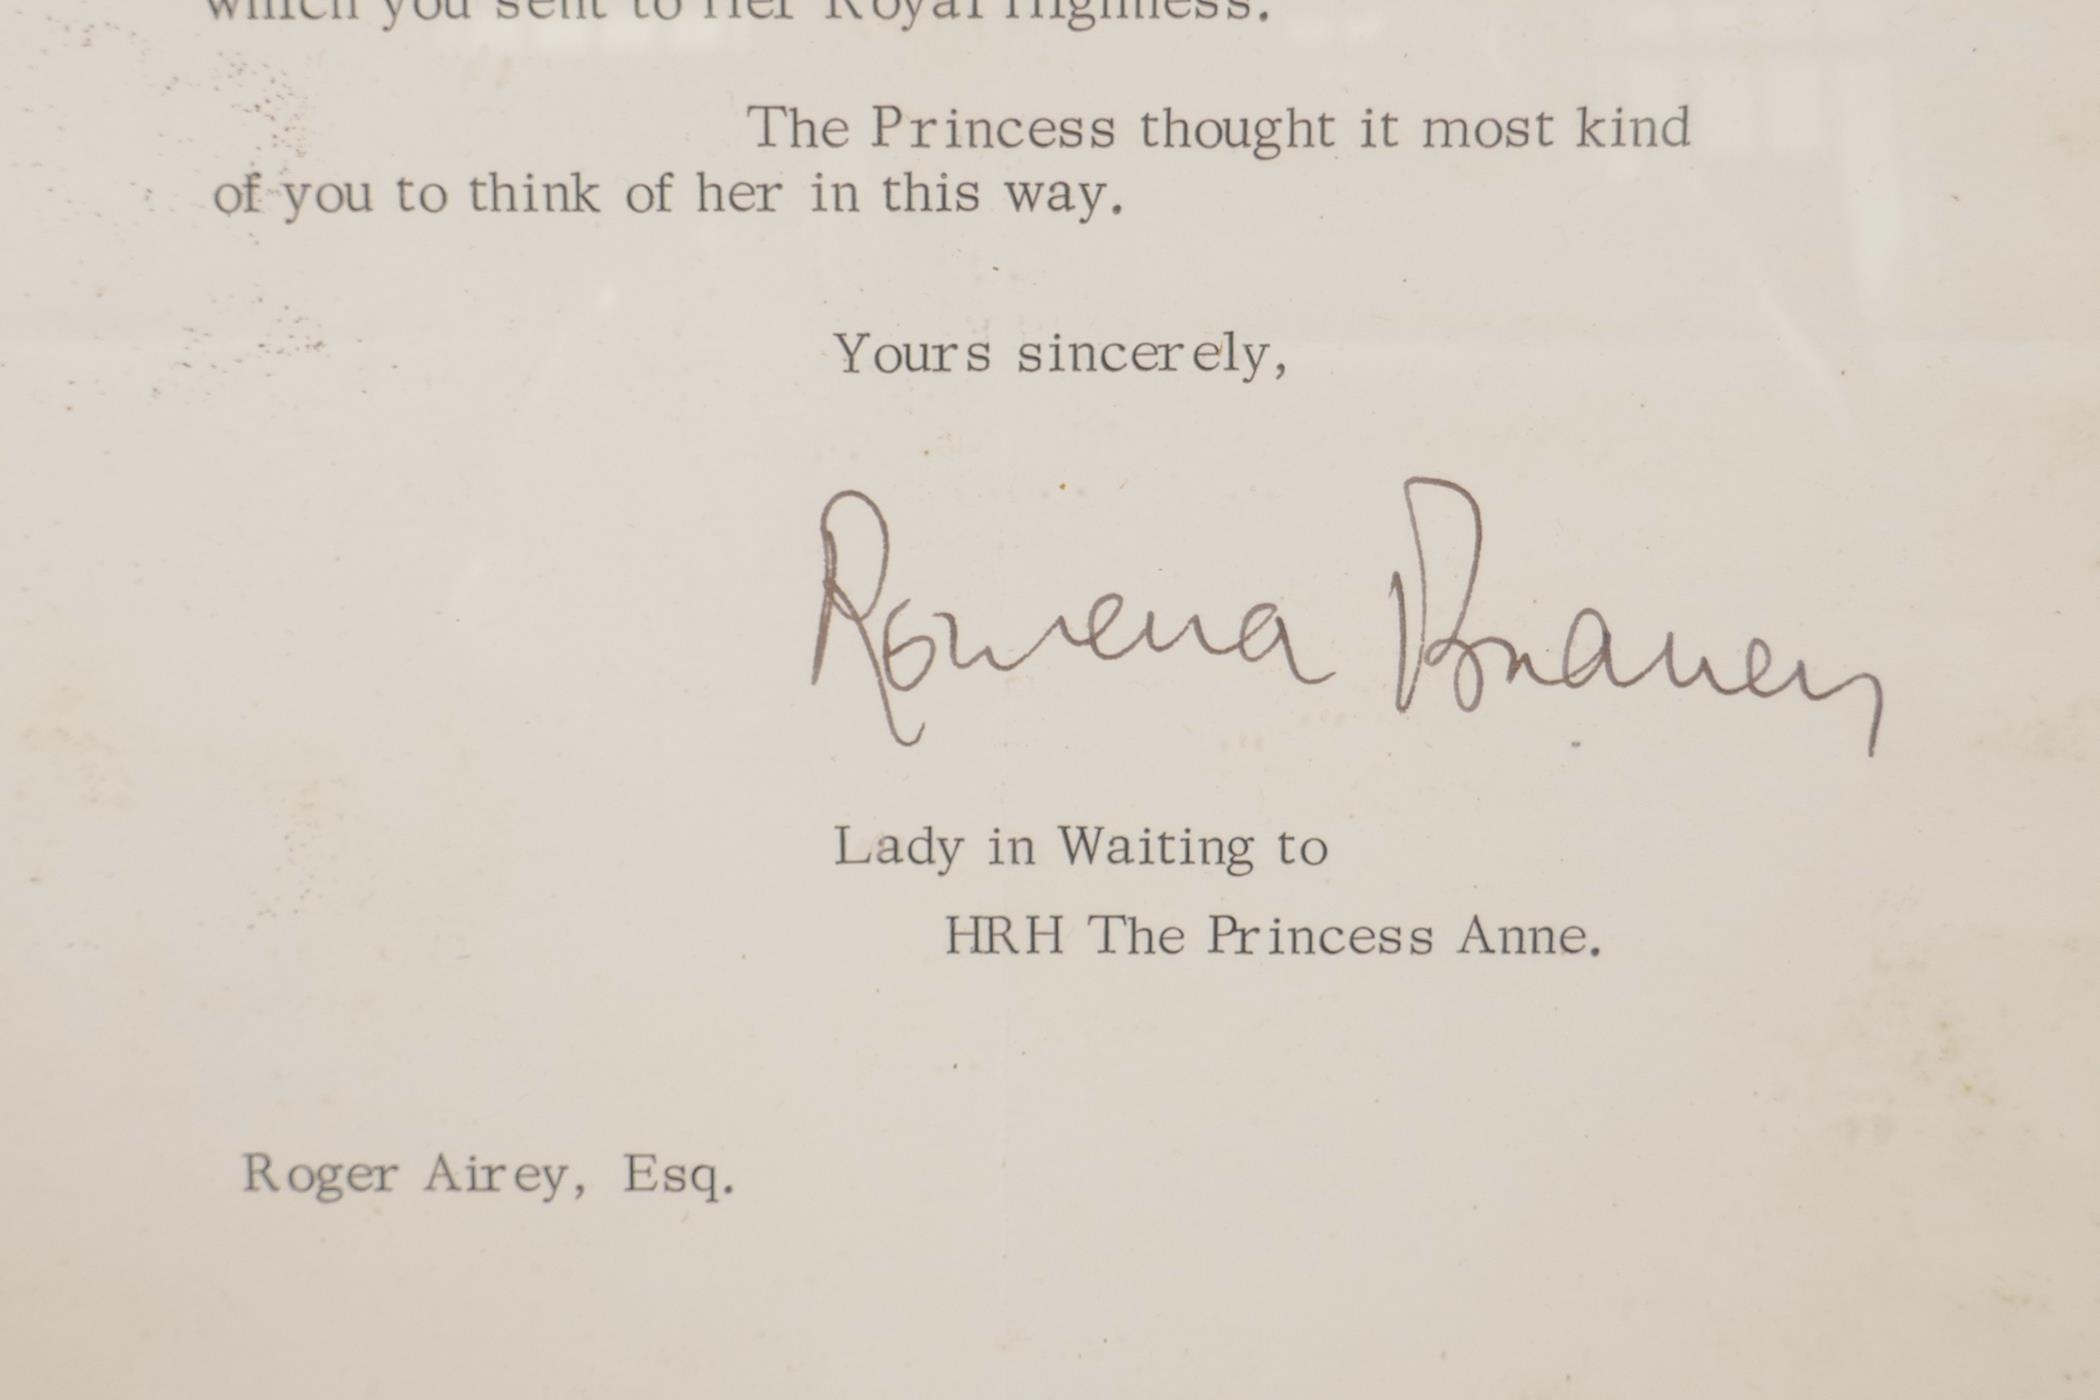 Lot 54 - Royal memorabilia: A letter from Buckingham Palace dated 12th June 1973, written to Mr. Roger